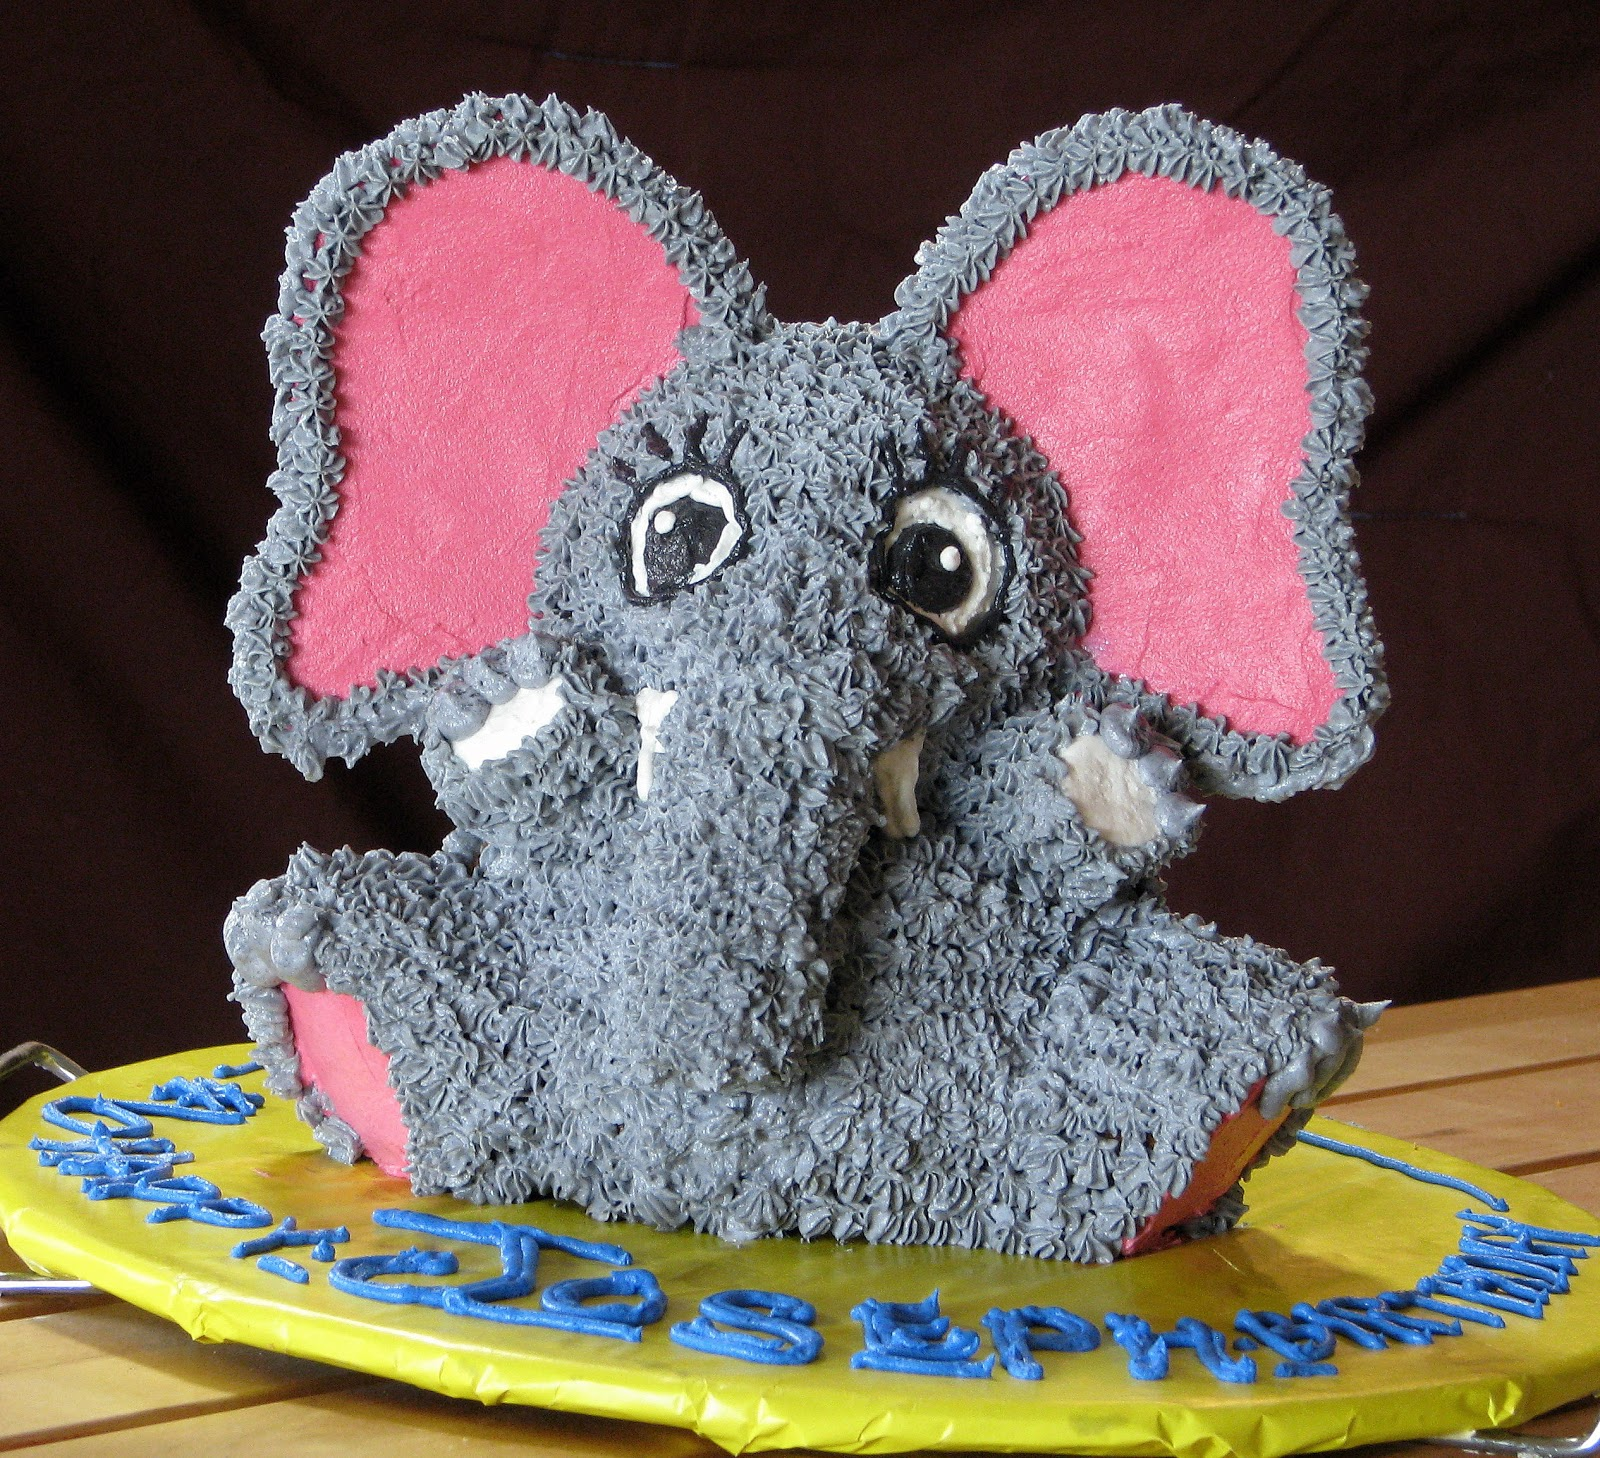 Memories For Later Teddy Bear Into An Elephant In Cake